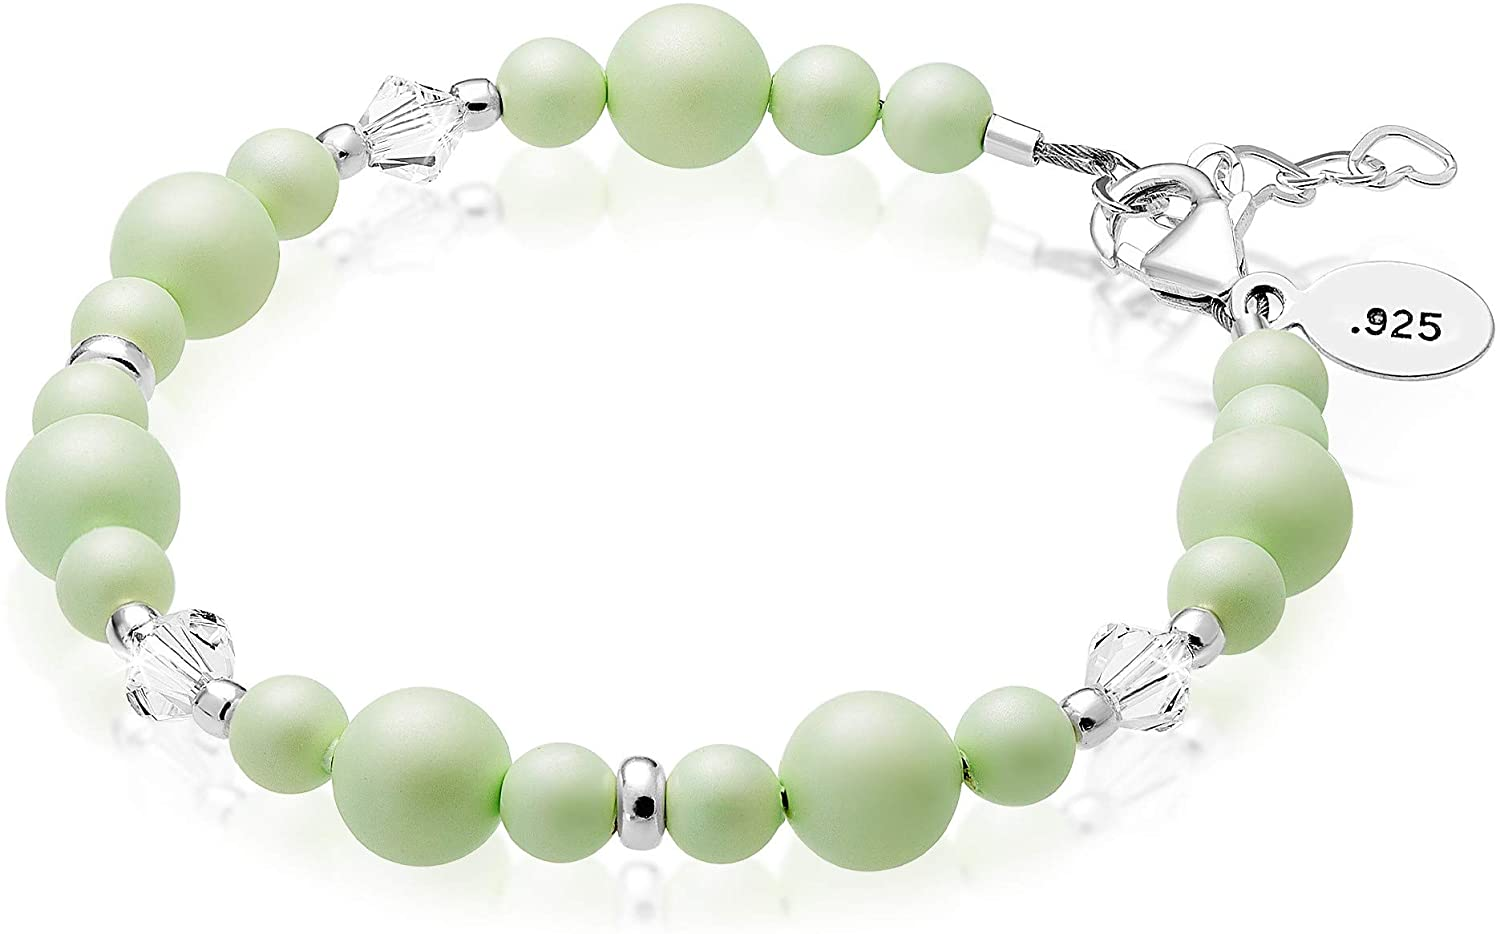 Baby Crystals 925 Sterling Silver Bracelets for Girls| Teen Girl Gifts | Cute Jewelry for Teen Girls Embellished with Simulated Pearls and Swarovski Crystals